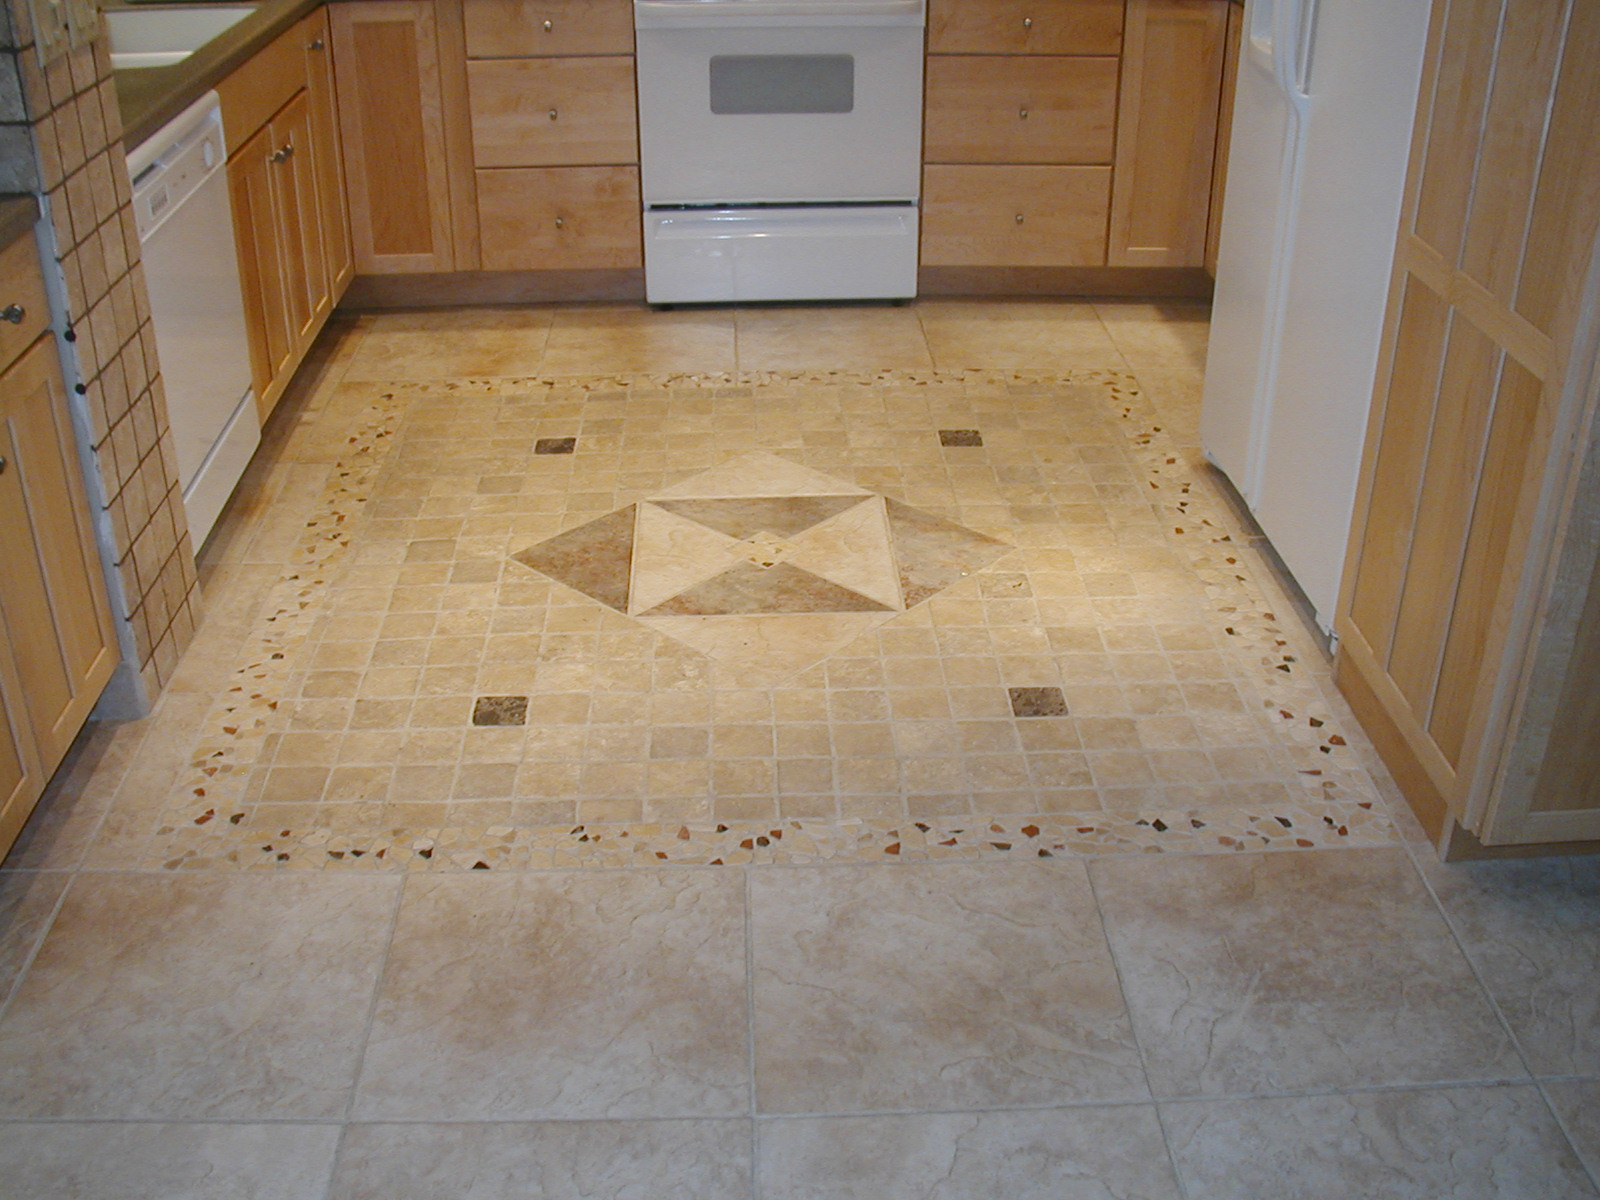 Floor Tile Design Ideas For Kitchen. Ceramic Tile Floors In